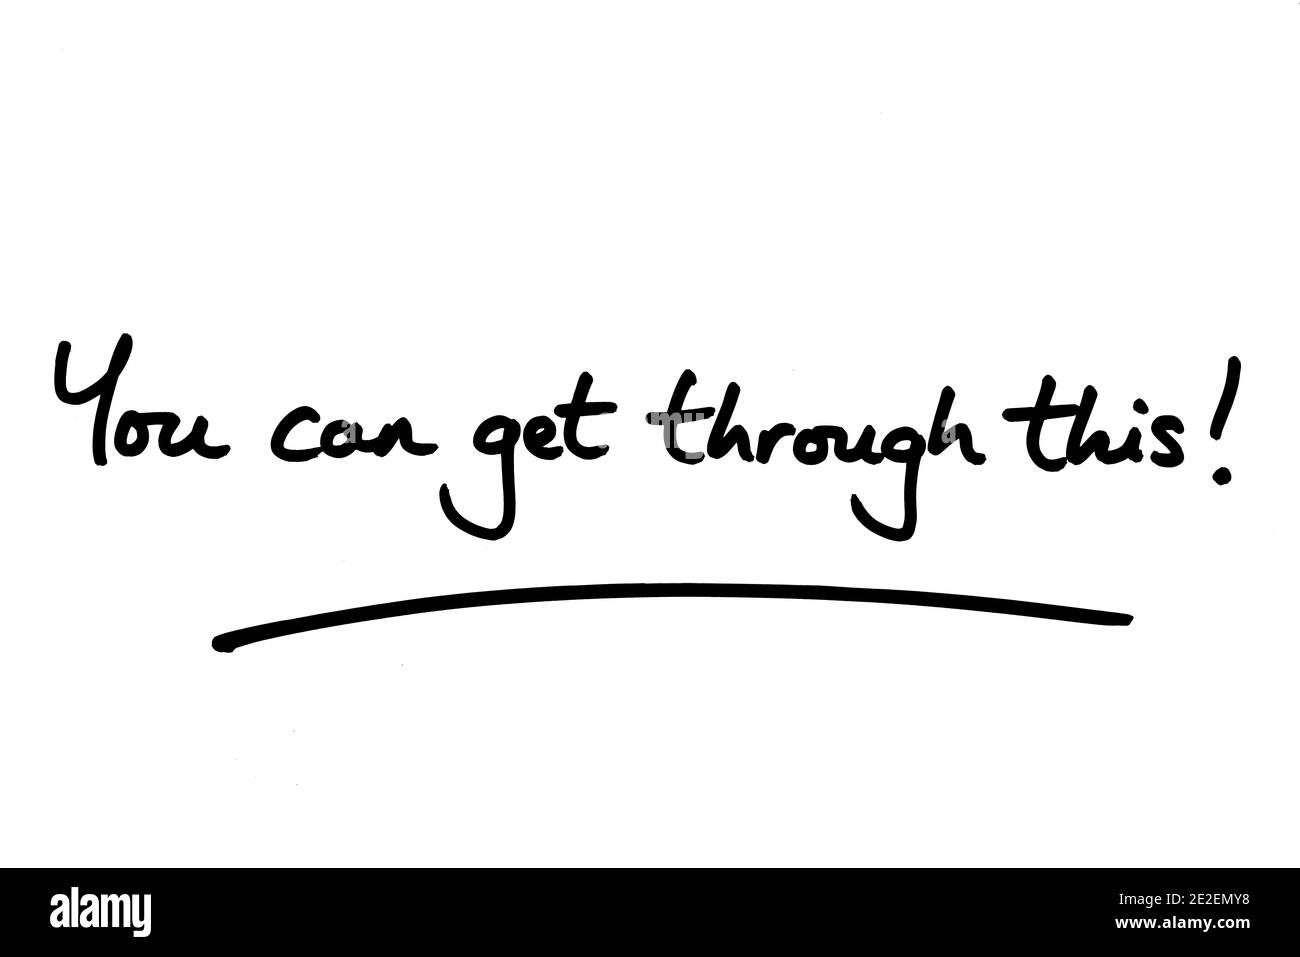 You can get through this! handwritten on a white background. Stock Photo